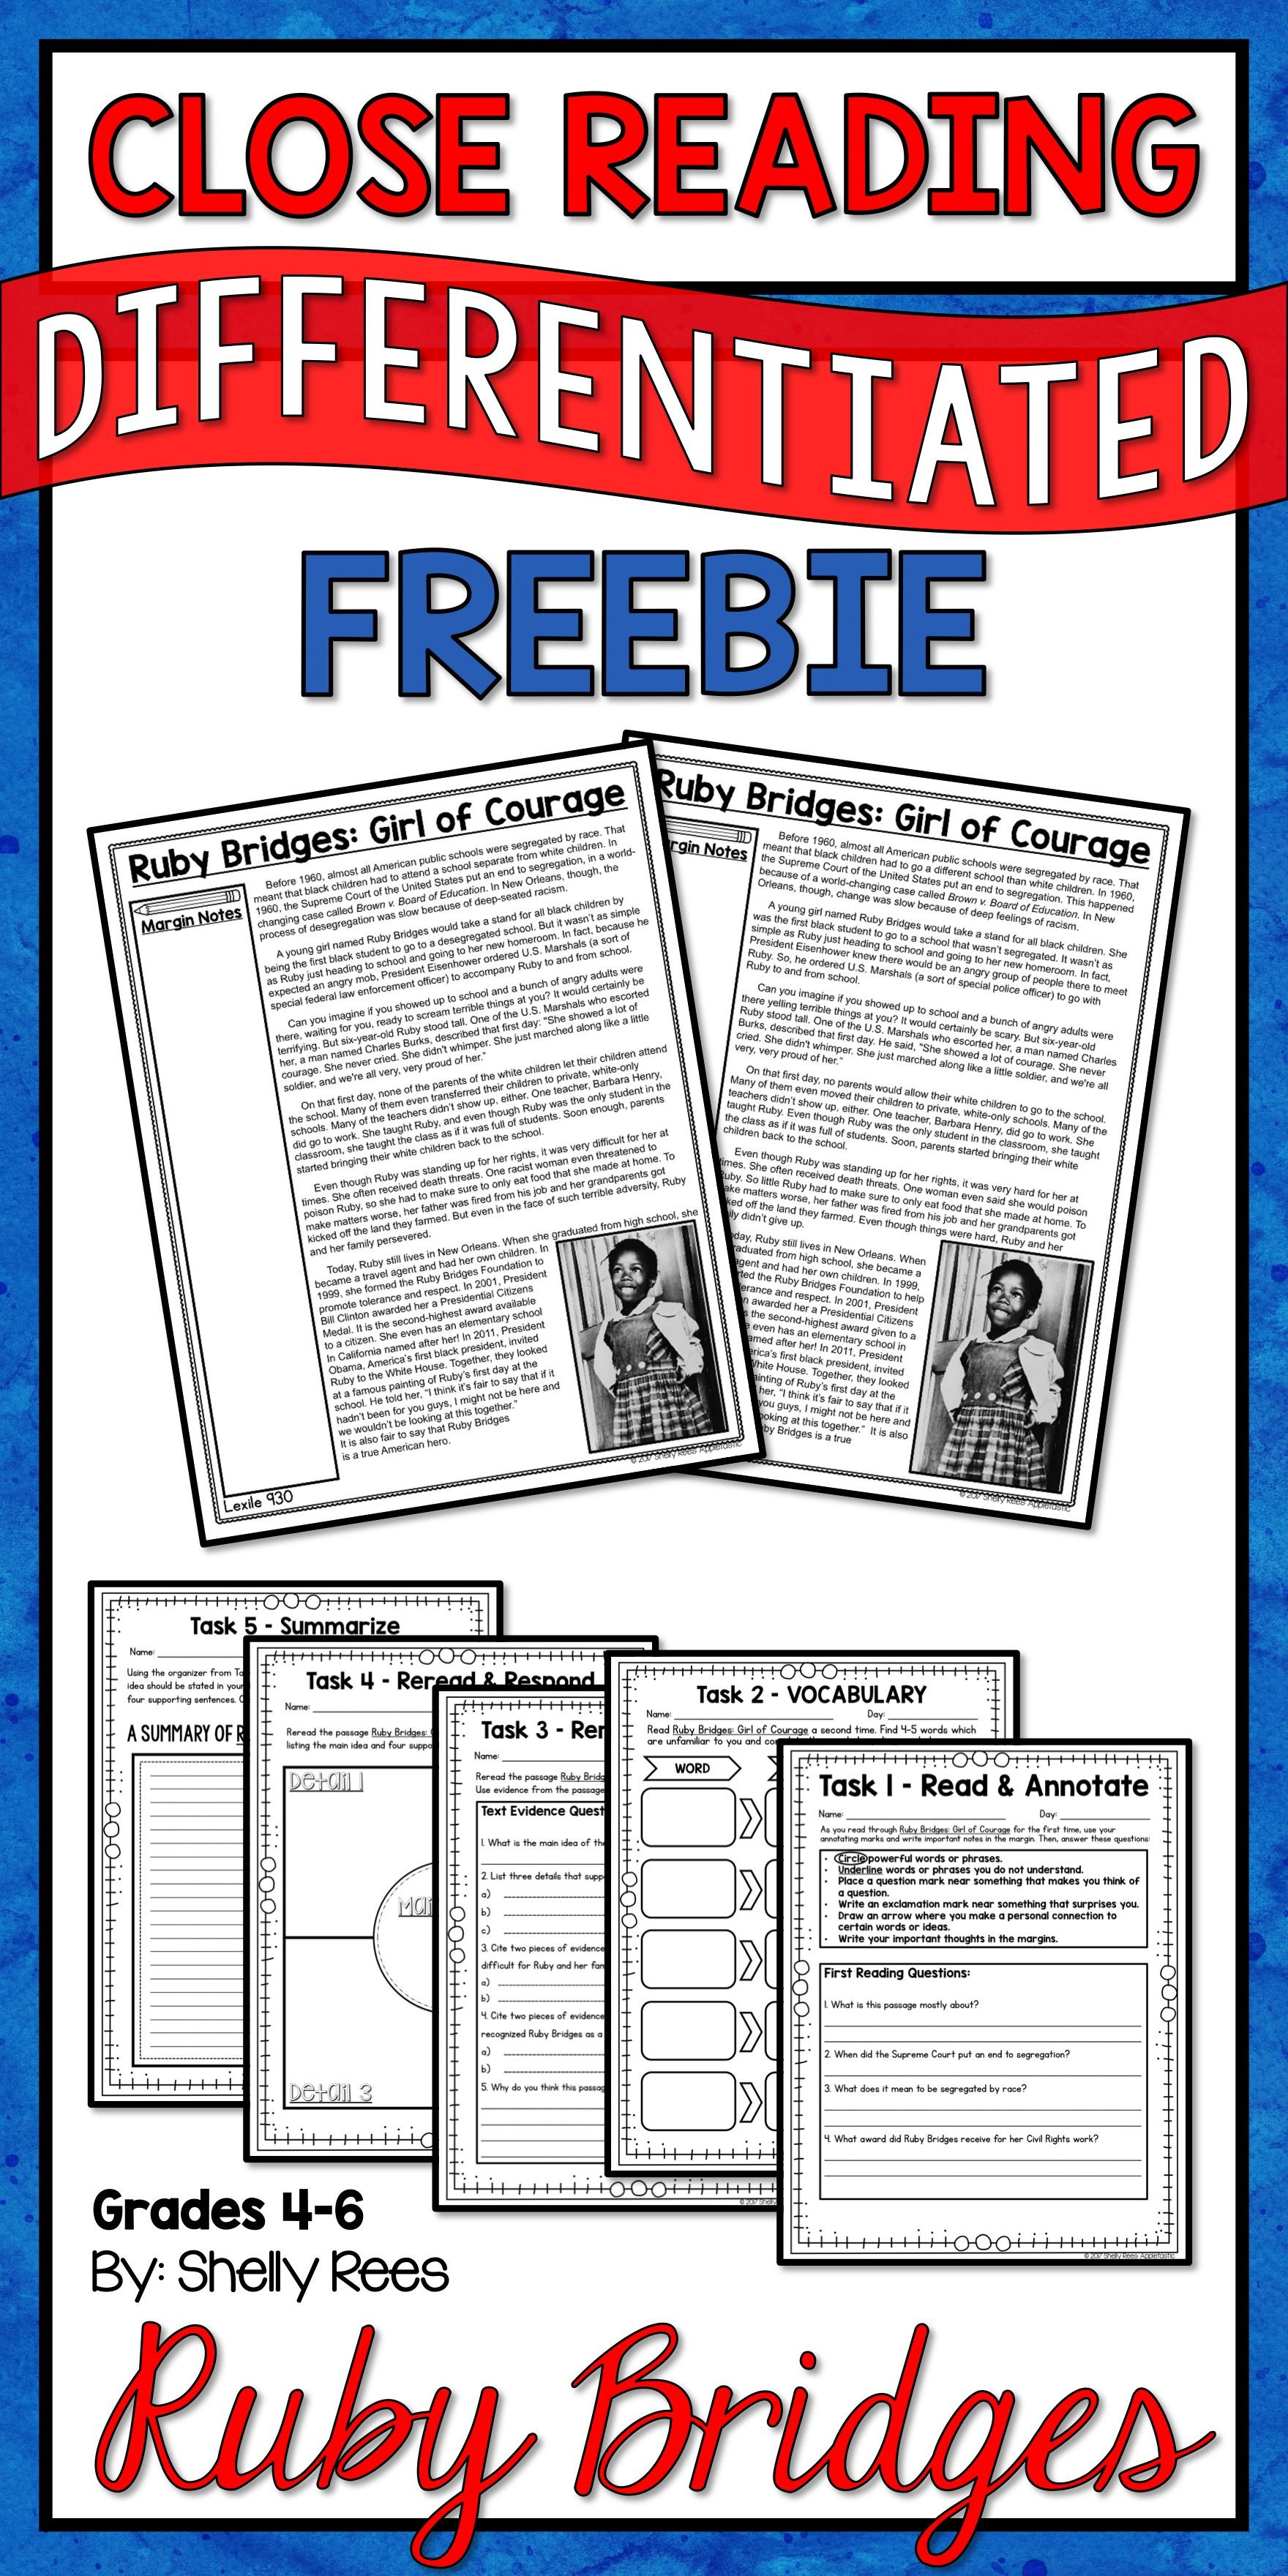 Ruby Bridges Reading Passage Free With Images